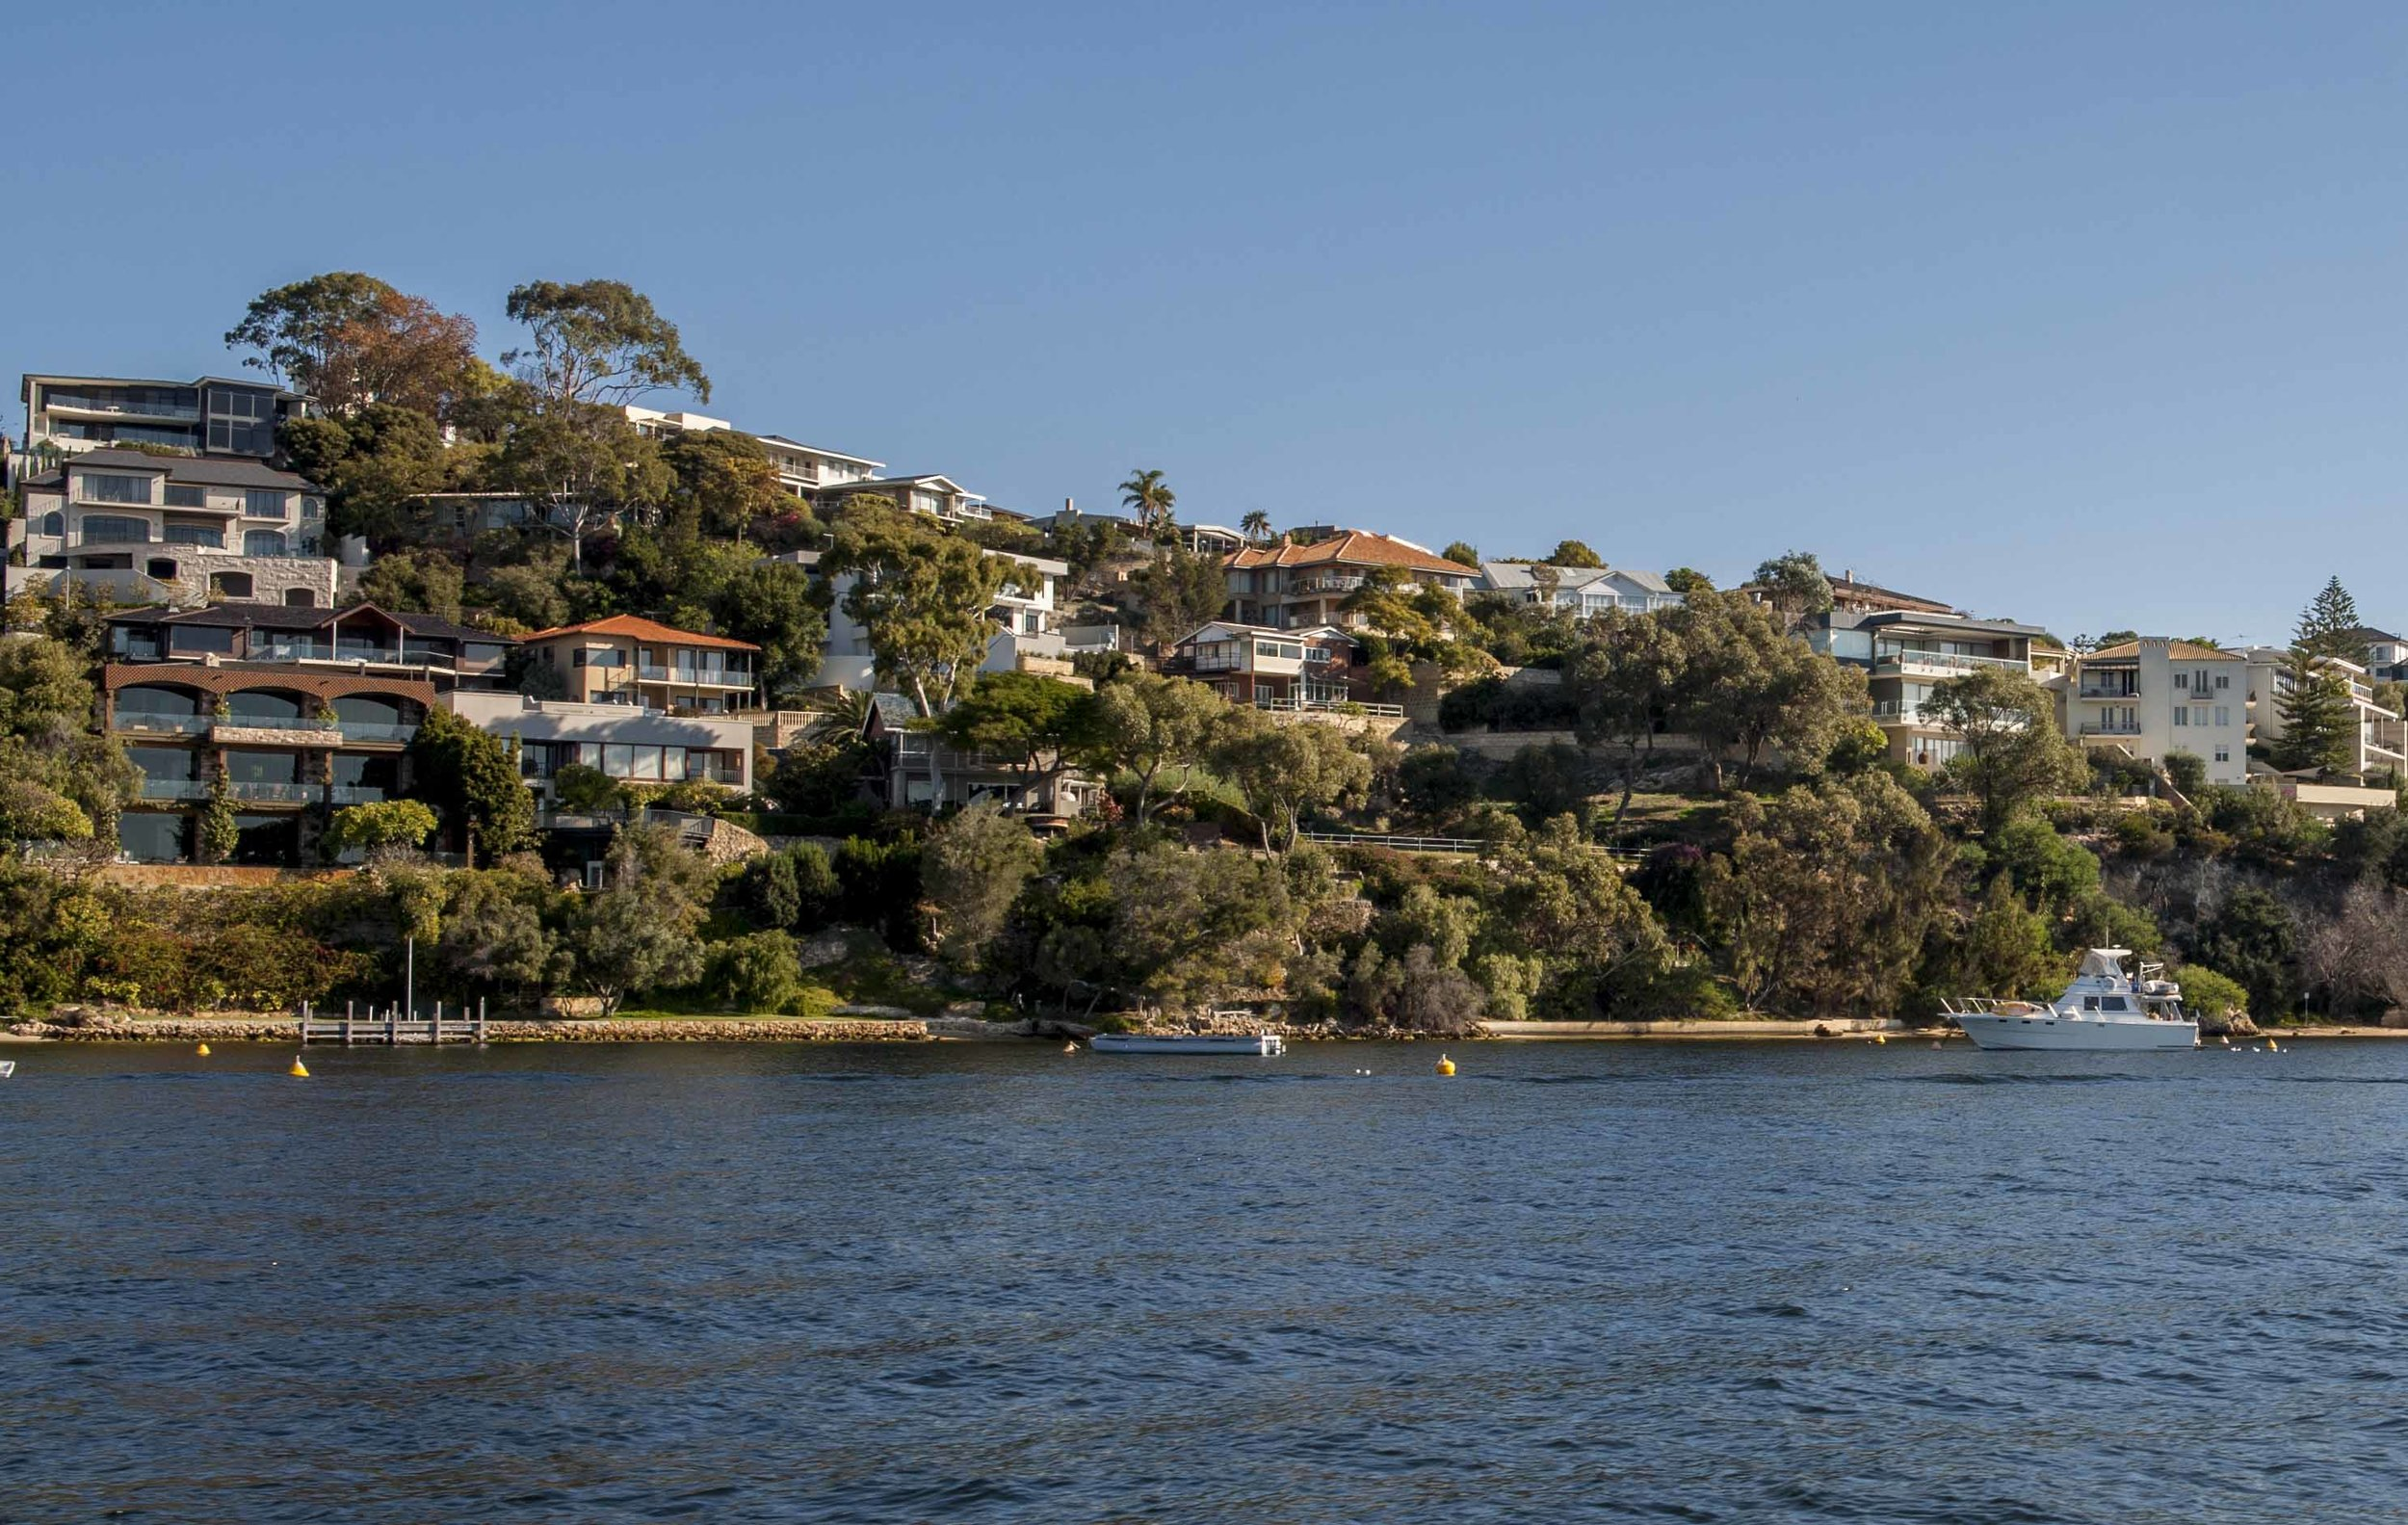 Posh houses on the Swan River